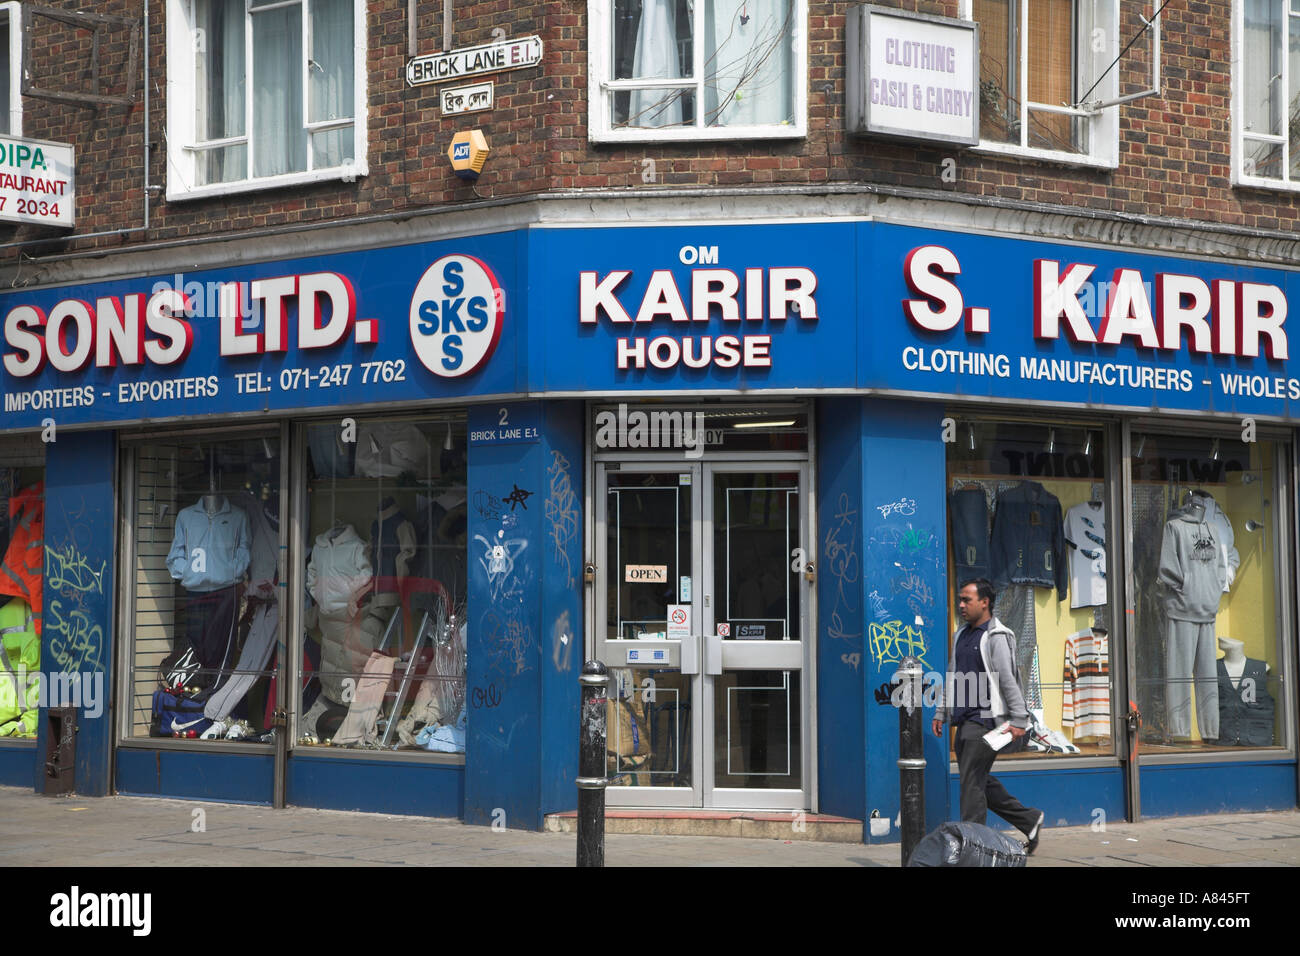 Street sign in English and Bengali and Asian clothing shop , Brick Lane, London, E1, England - Stock Image